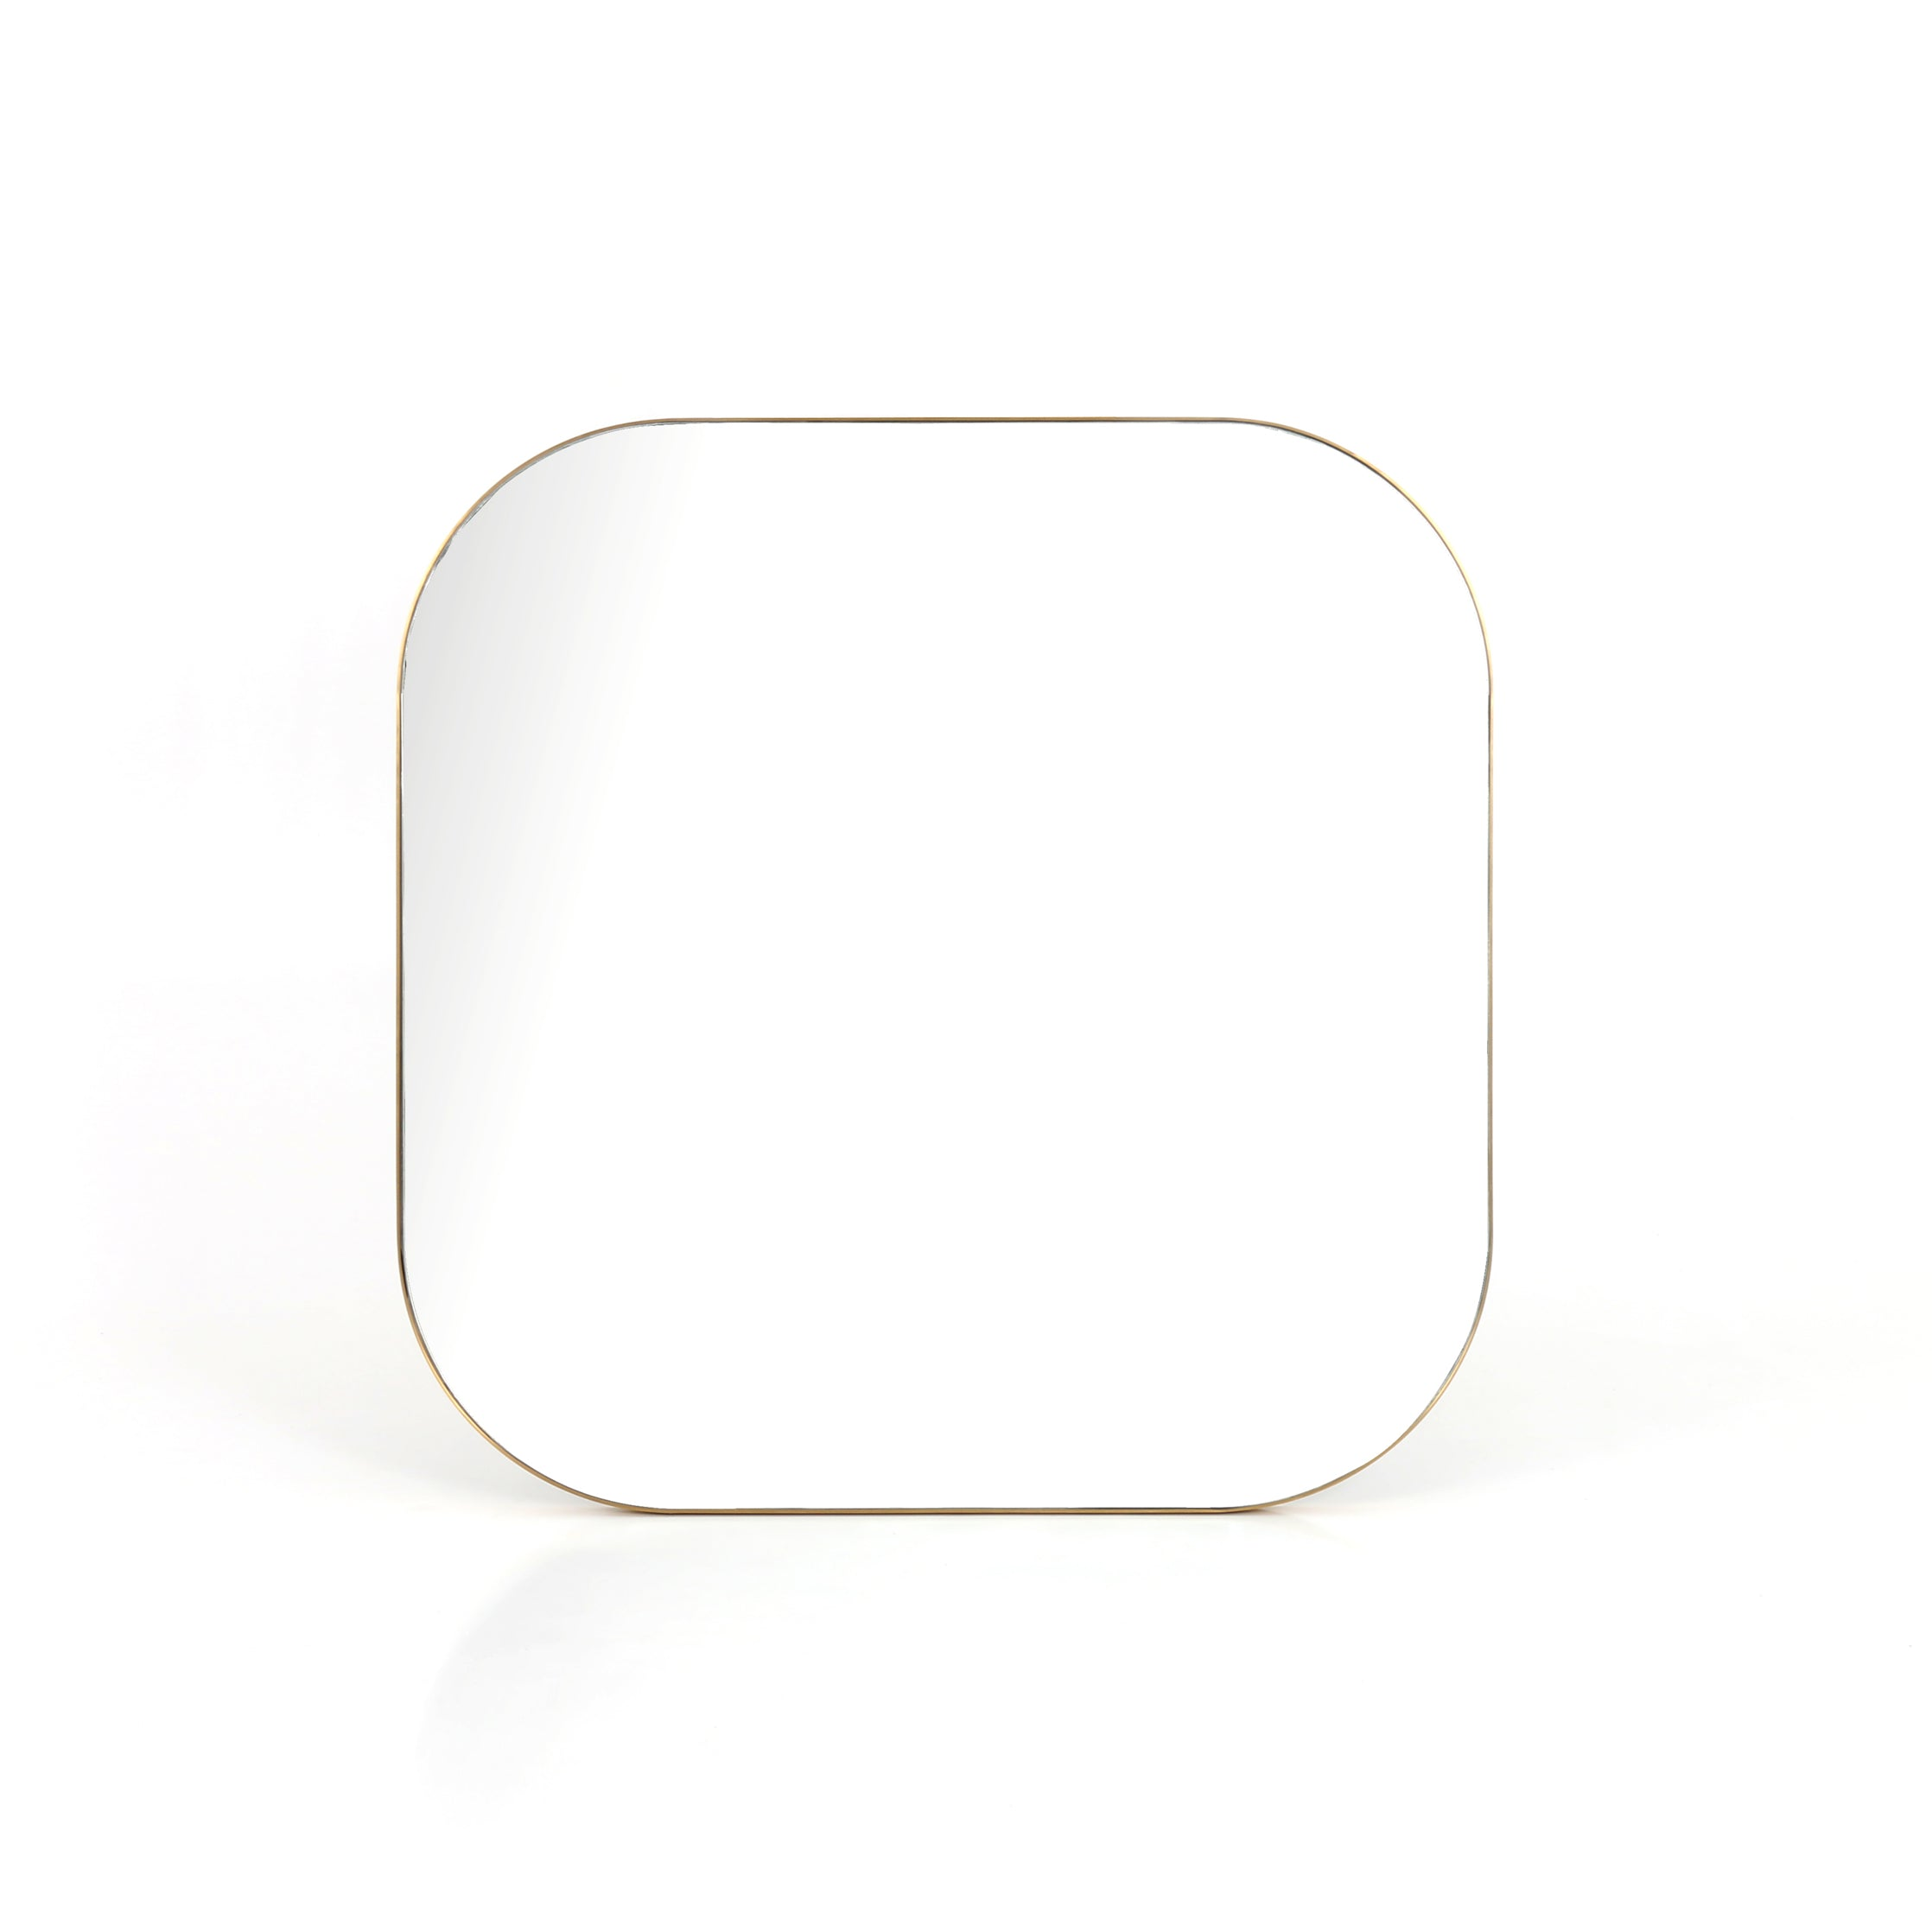 Bellvue Square Mirror in Brass design by BD Studio